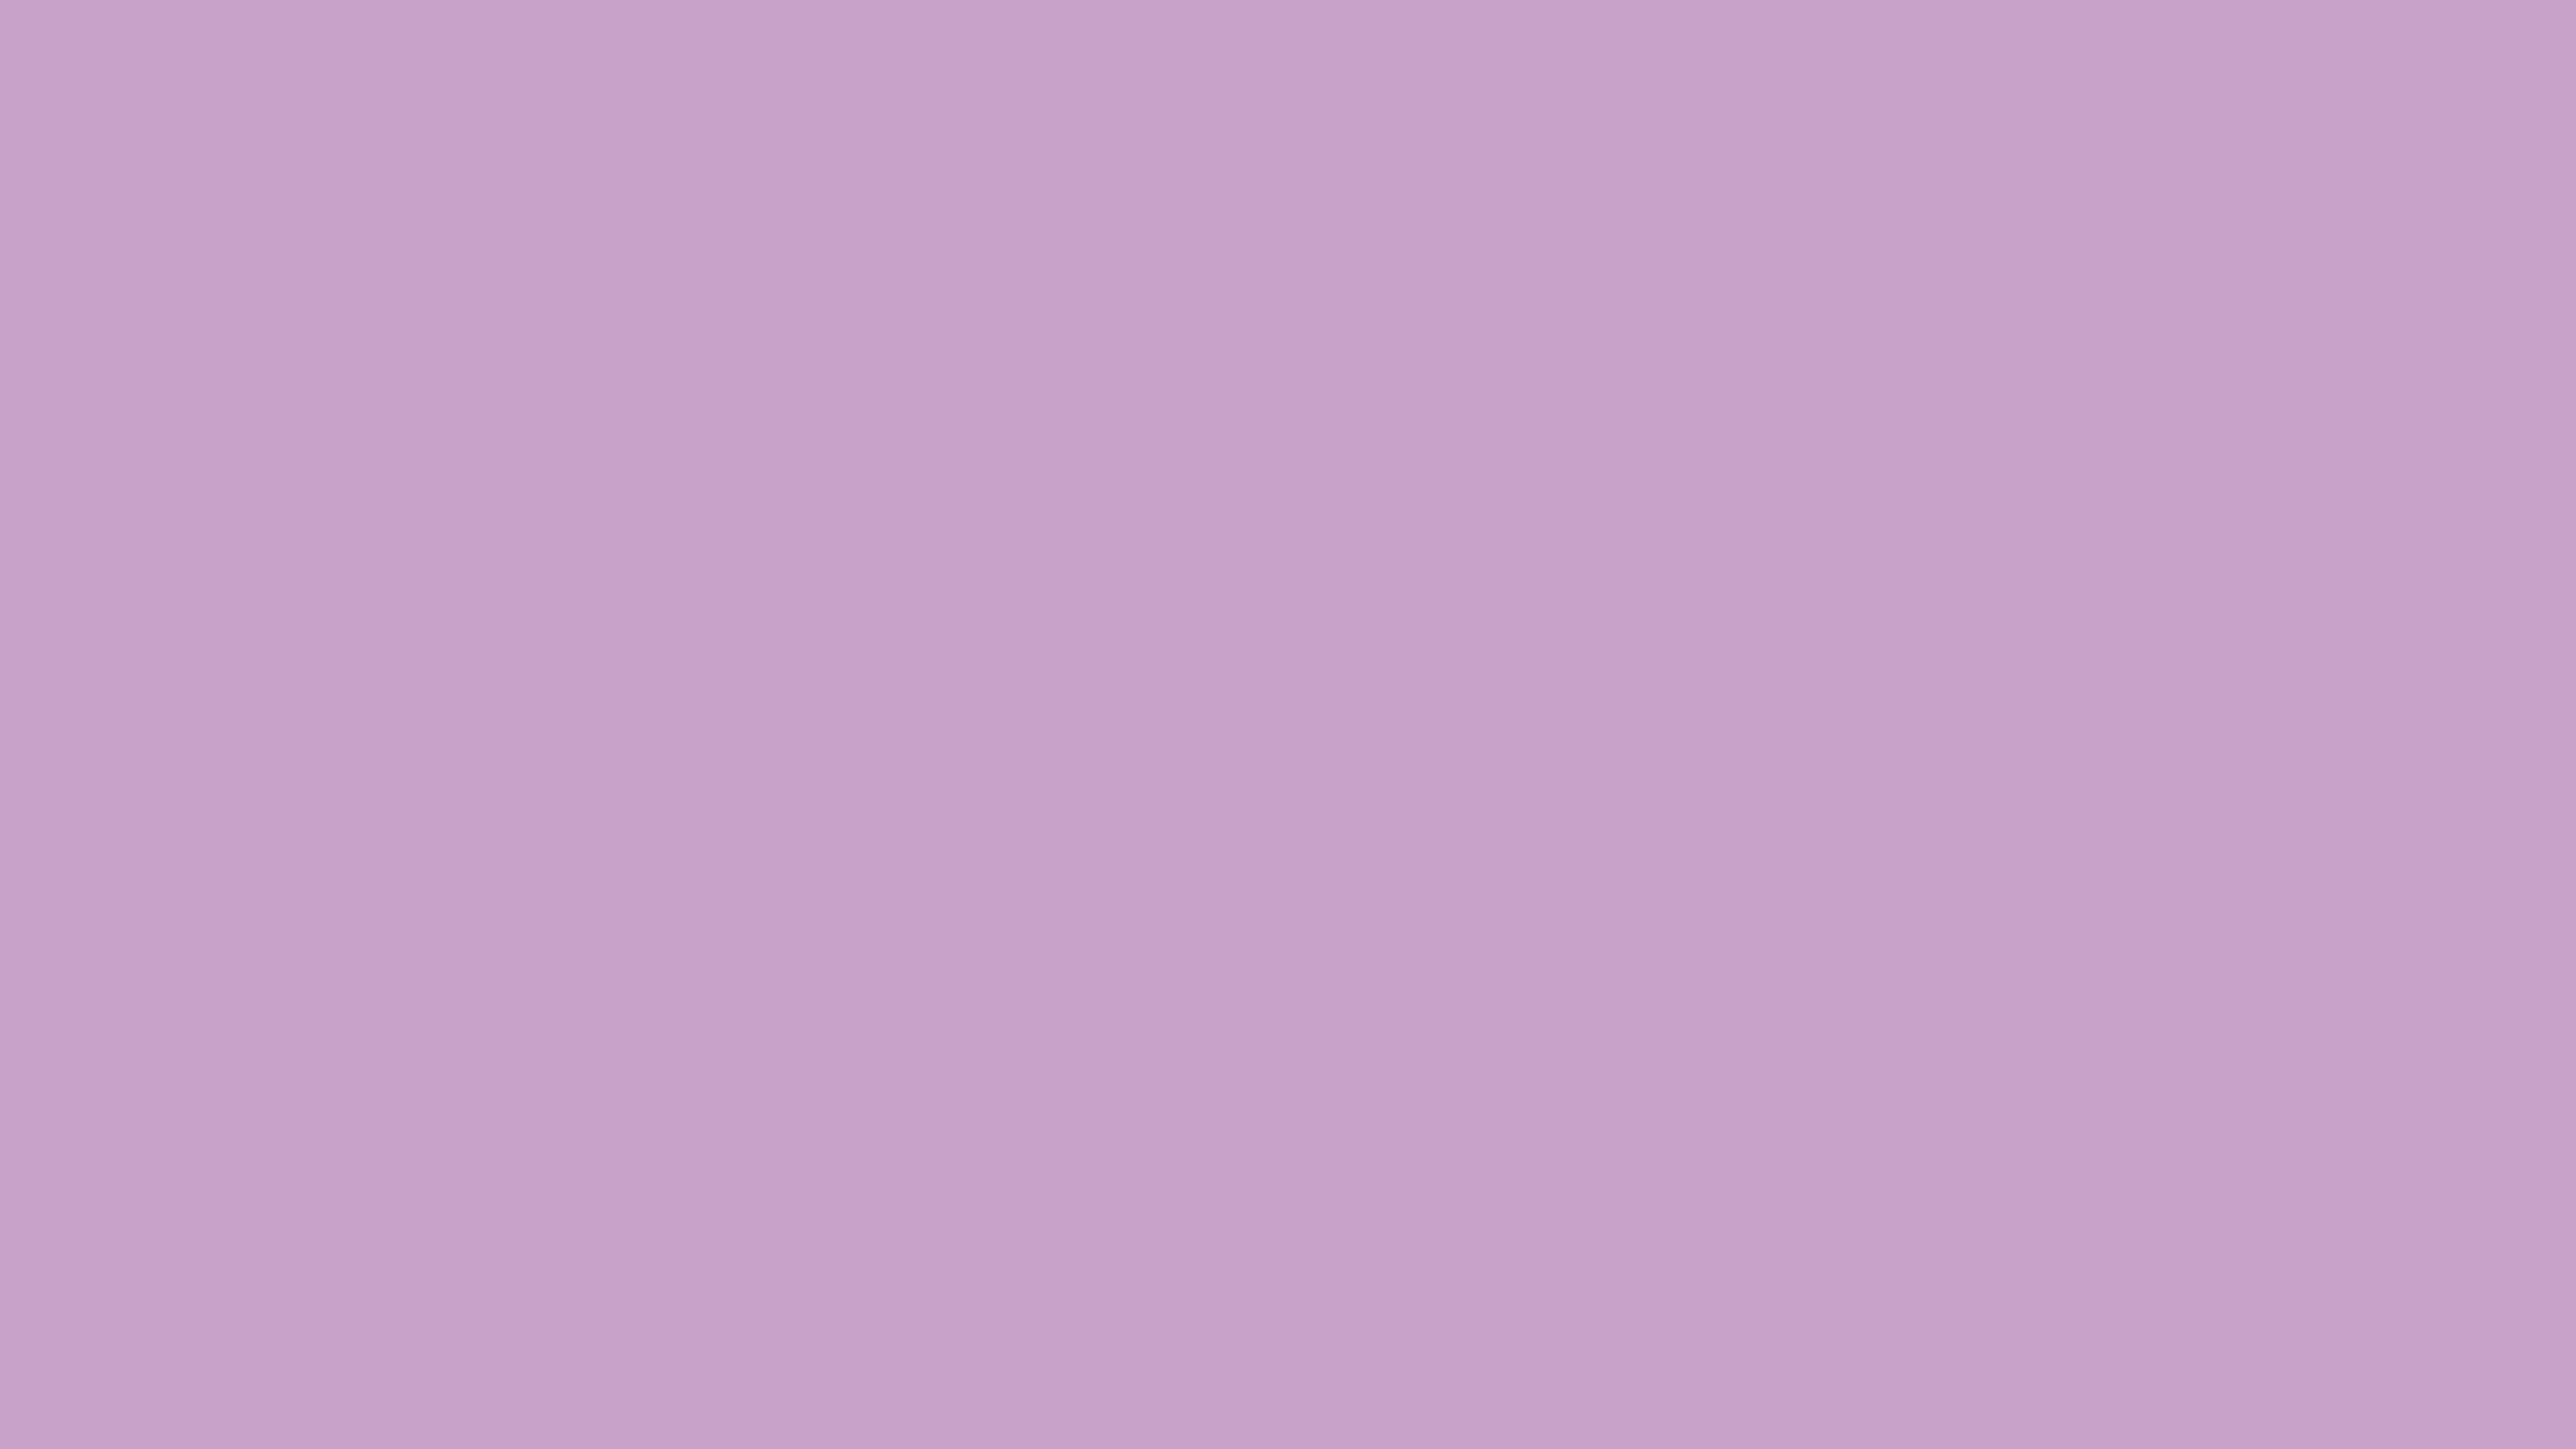 3840x2160 Lilac Solid Color Background